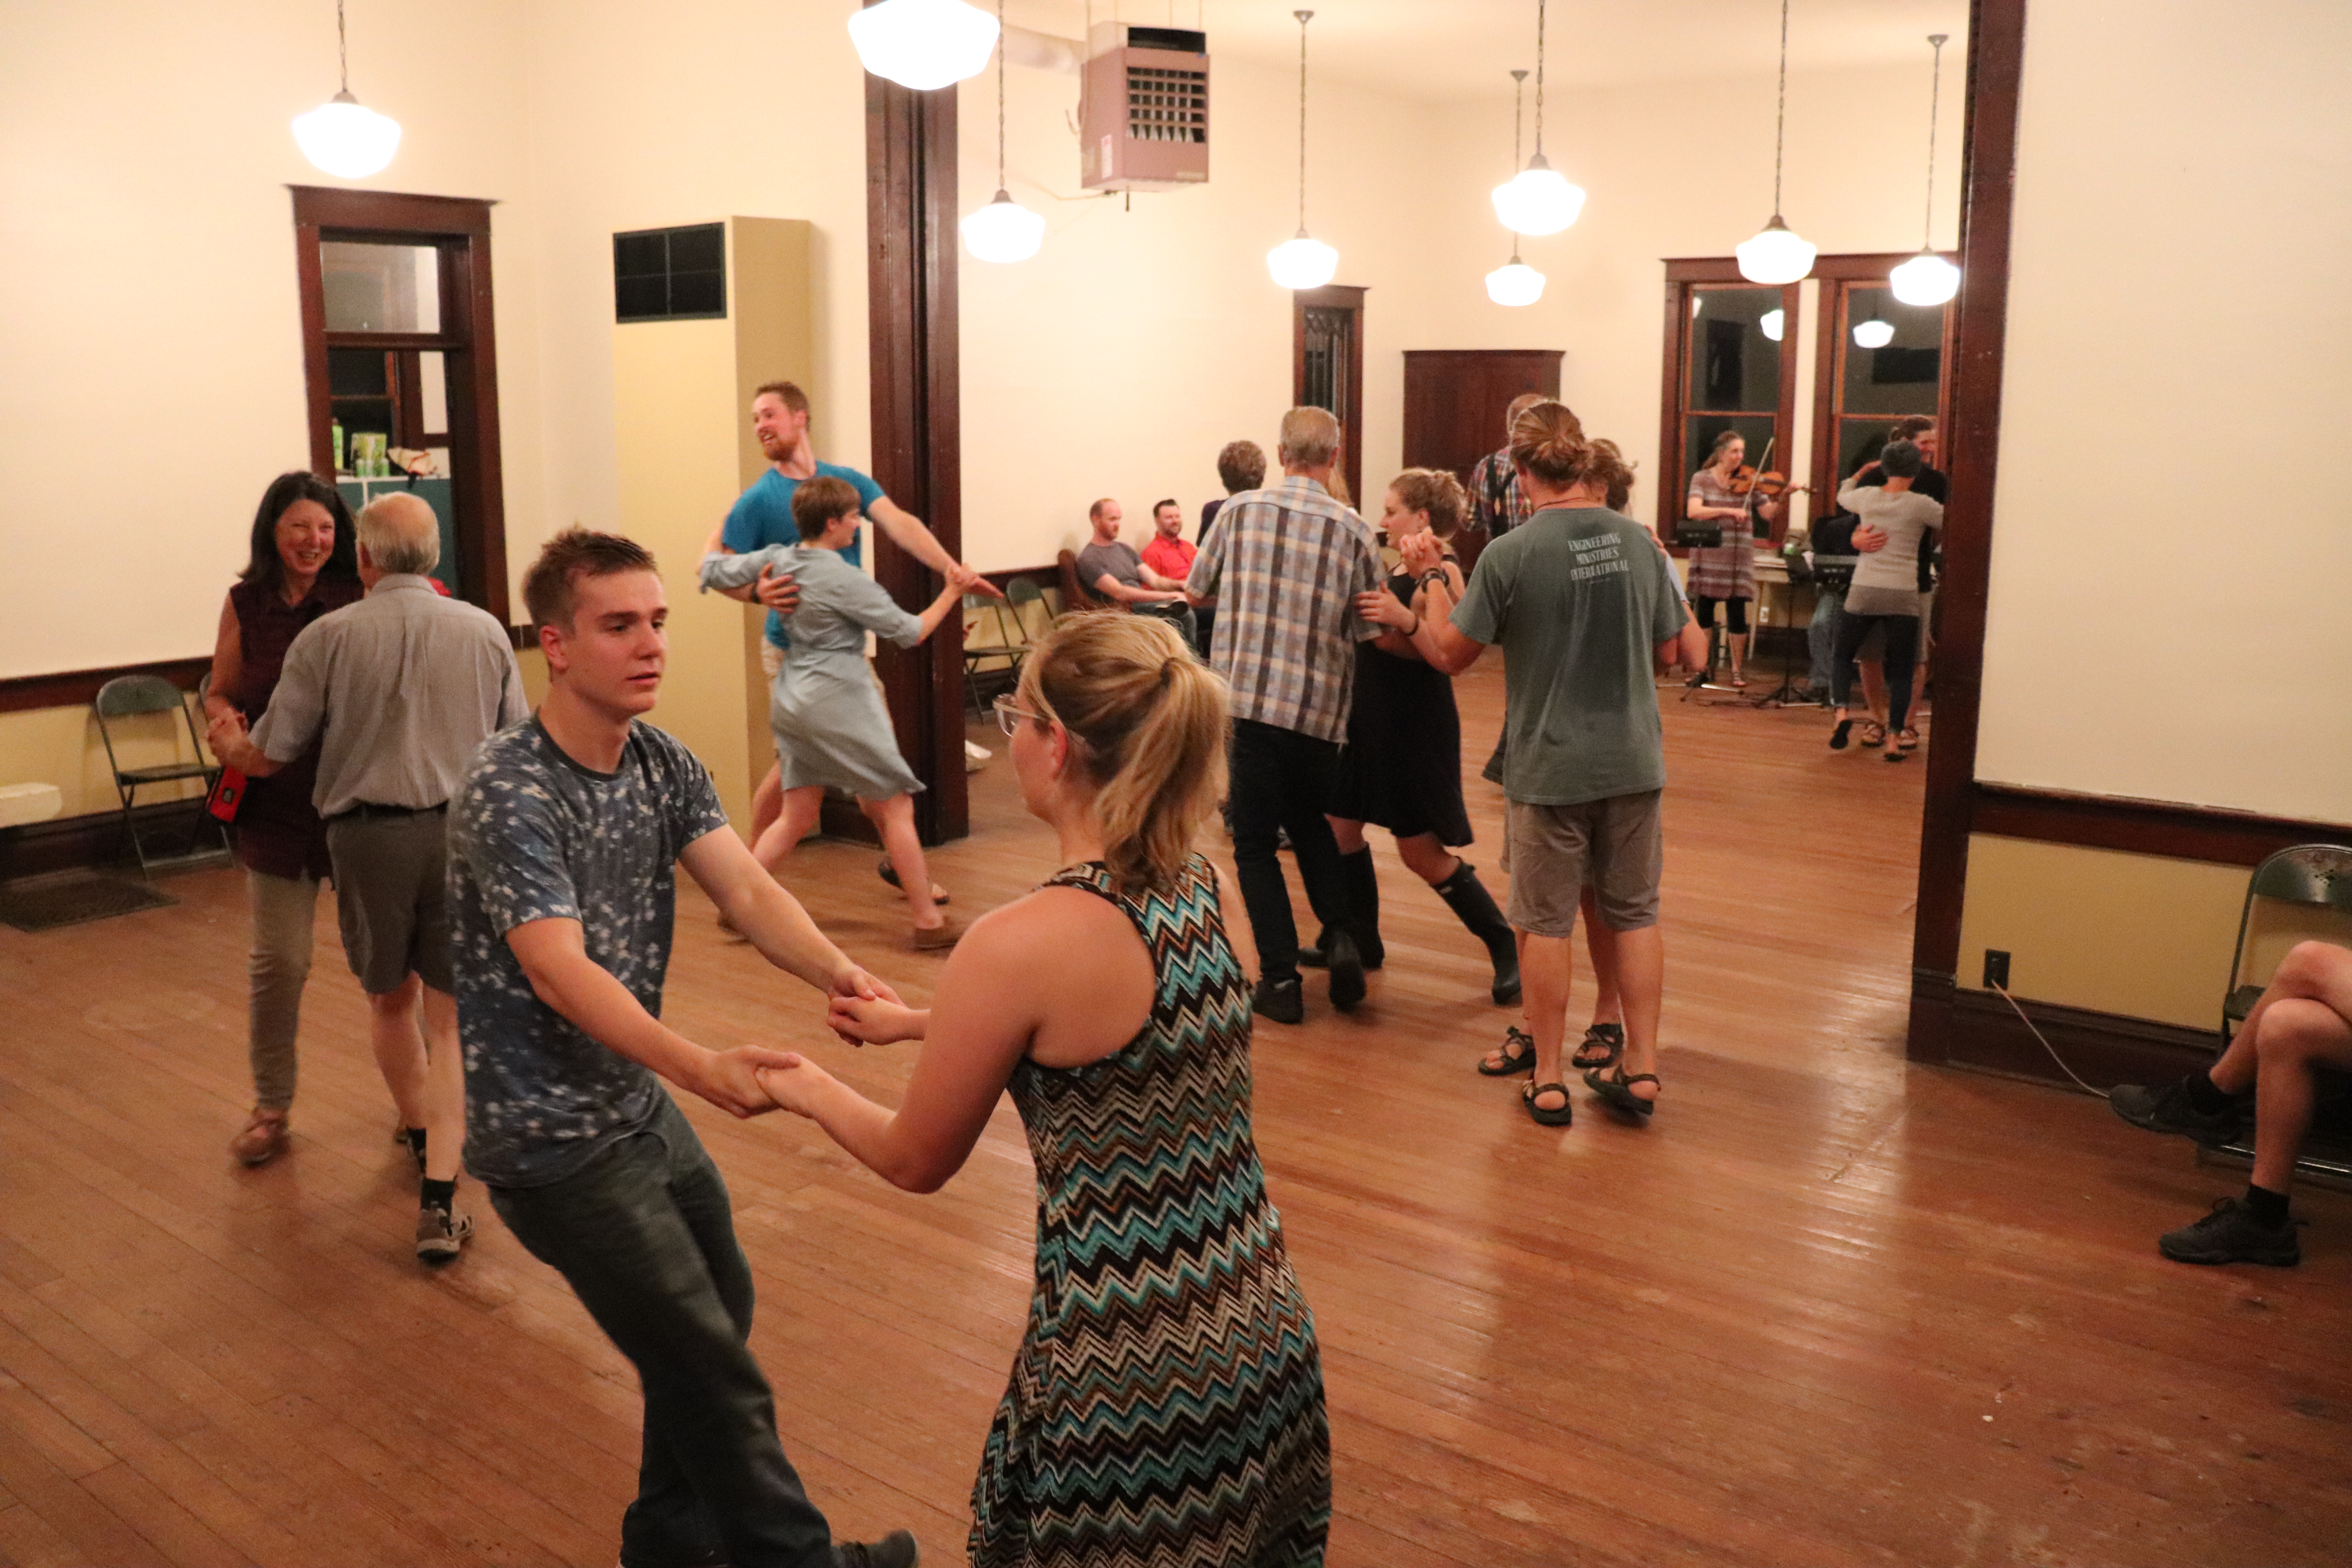 Many couples dancing.